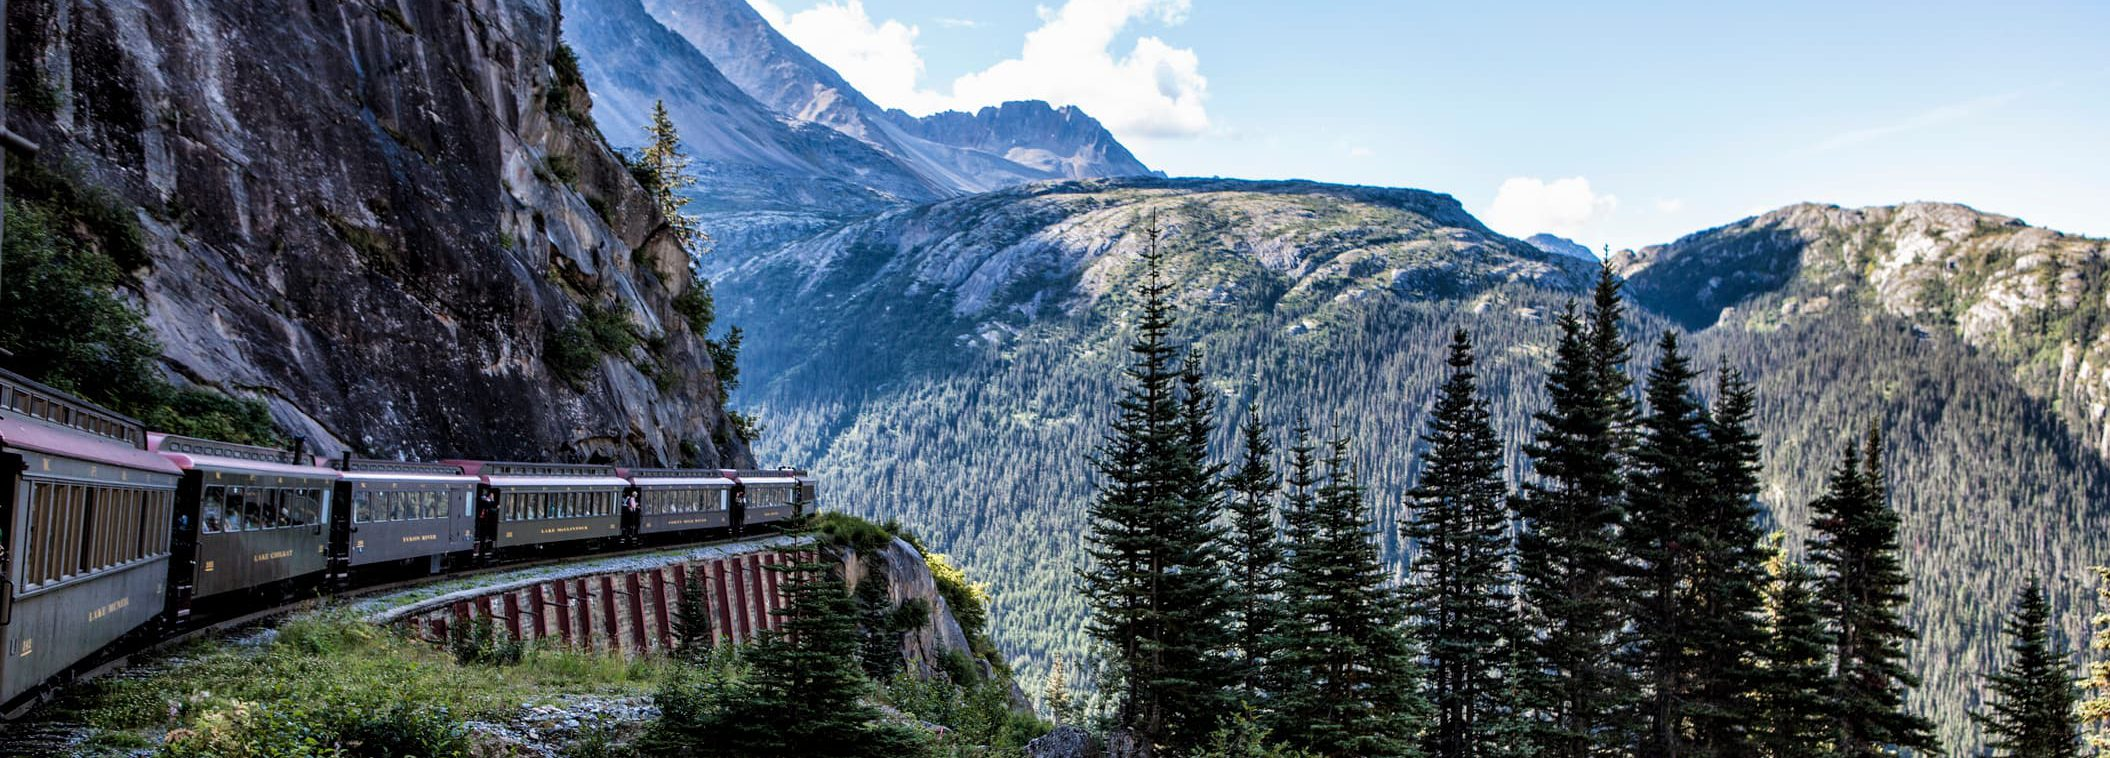 train travelling around a mountain pass